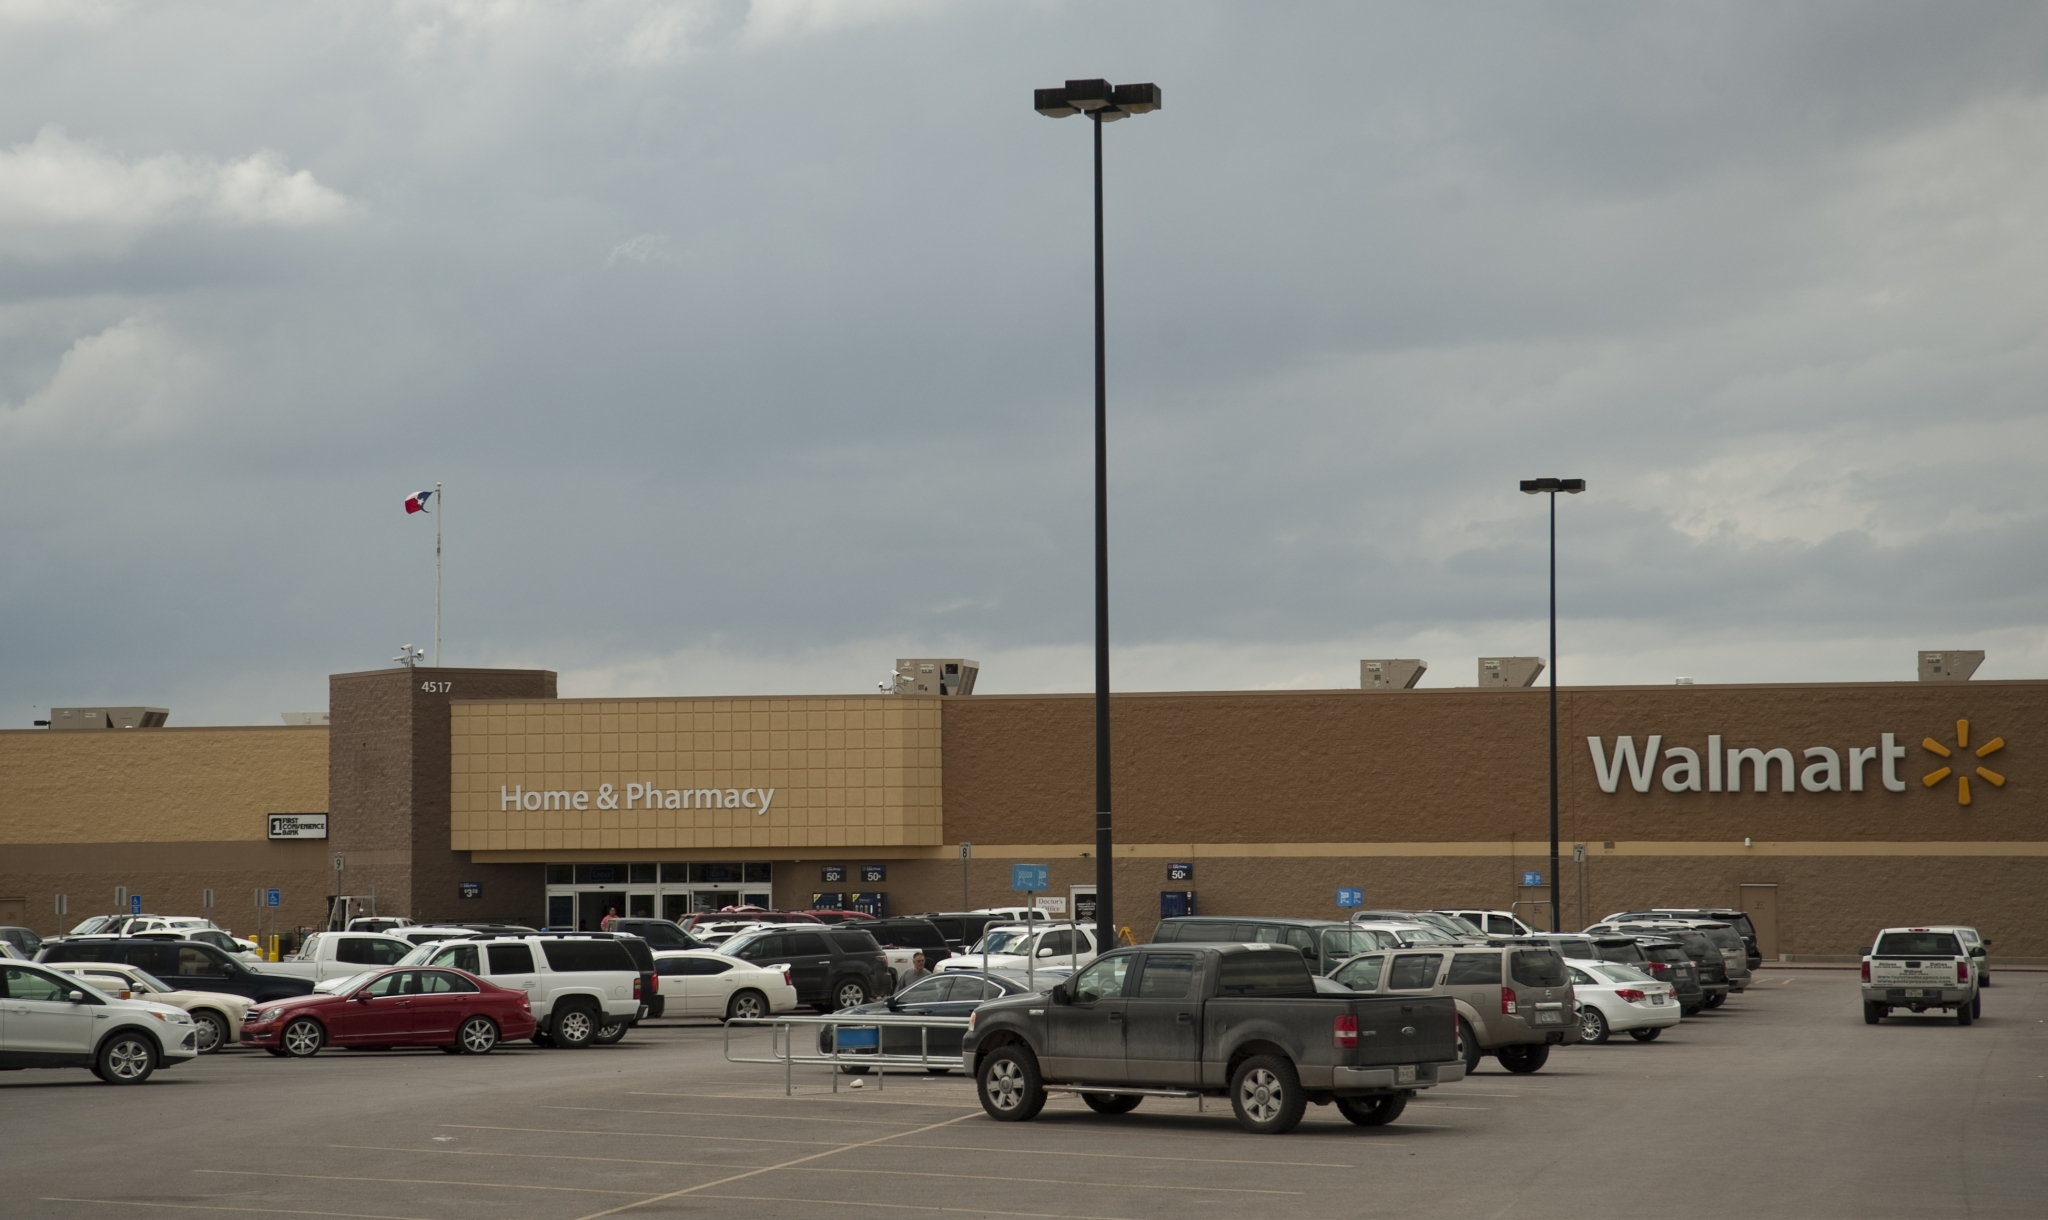 texans blame secret military takeover for walmart closings  secret tunnels